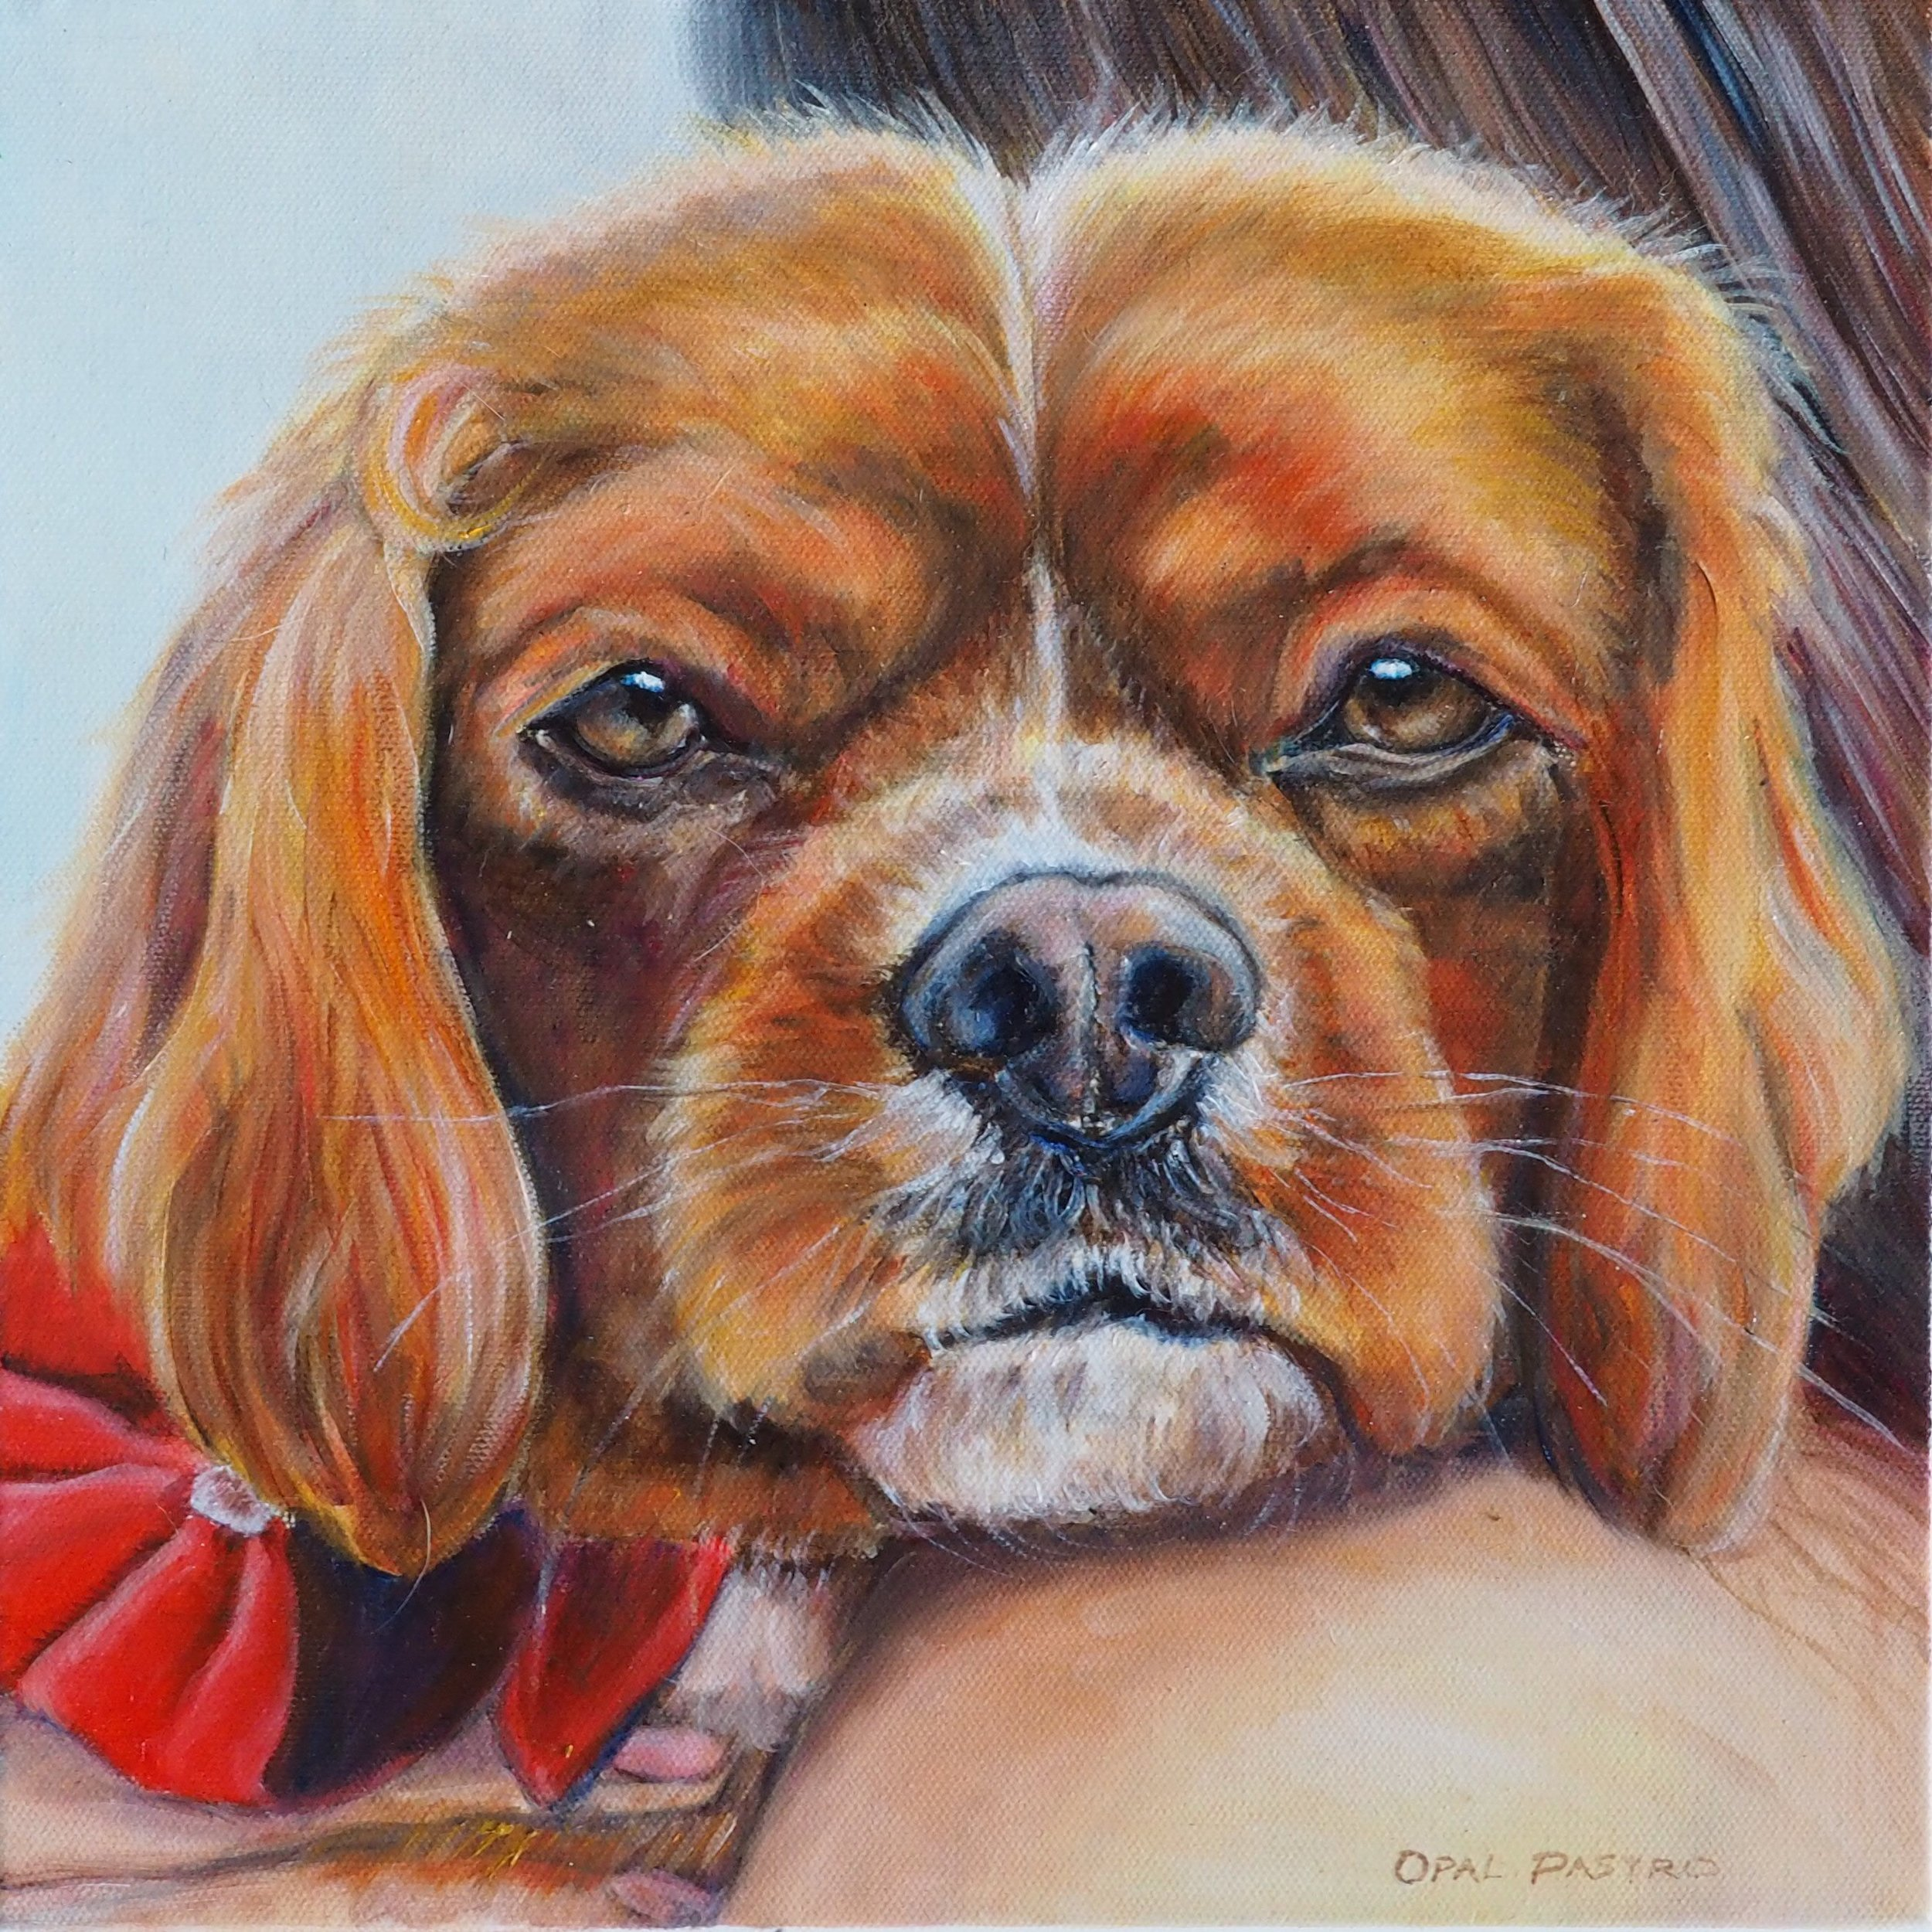 DOG CUSTOM PORTRAIT OF CAVALIER BY OPAL PASTRO ART